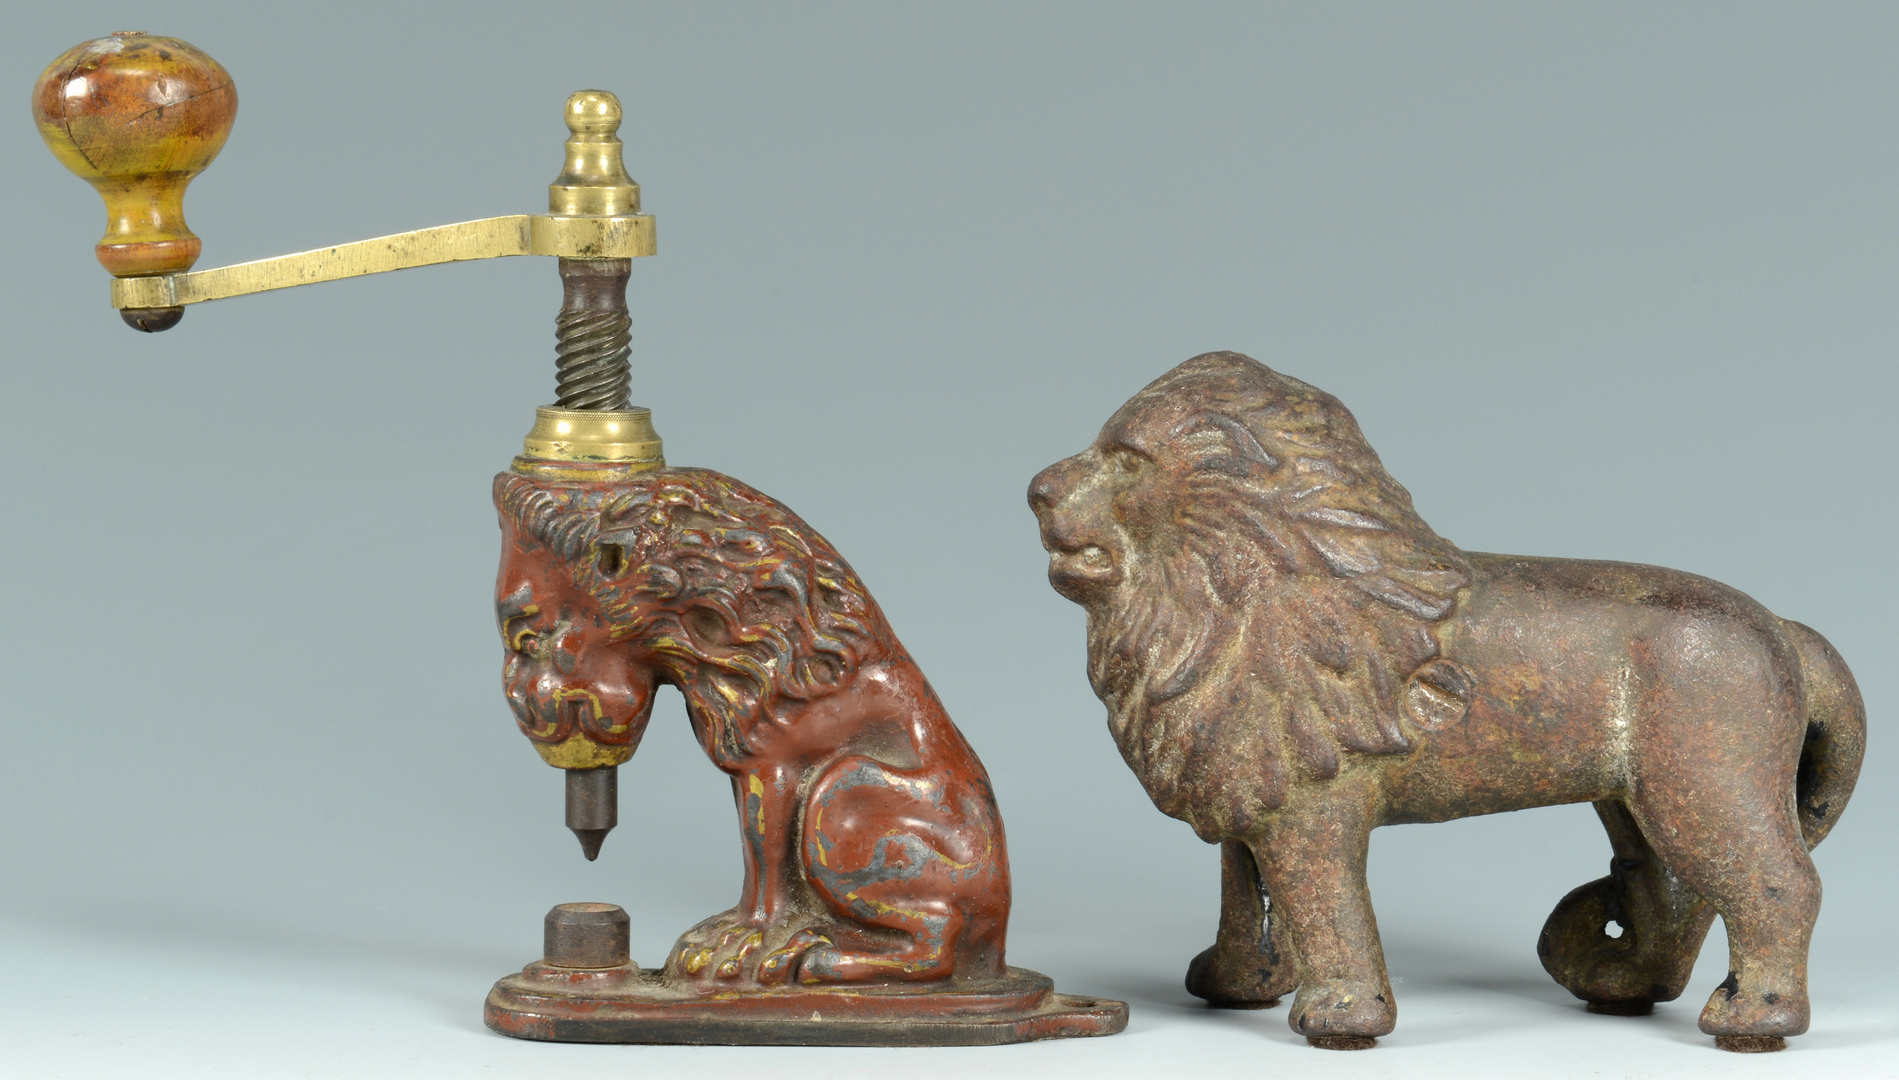 Lot 3088123: Cast Iron Lion Hole Punch and Bank